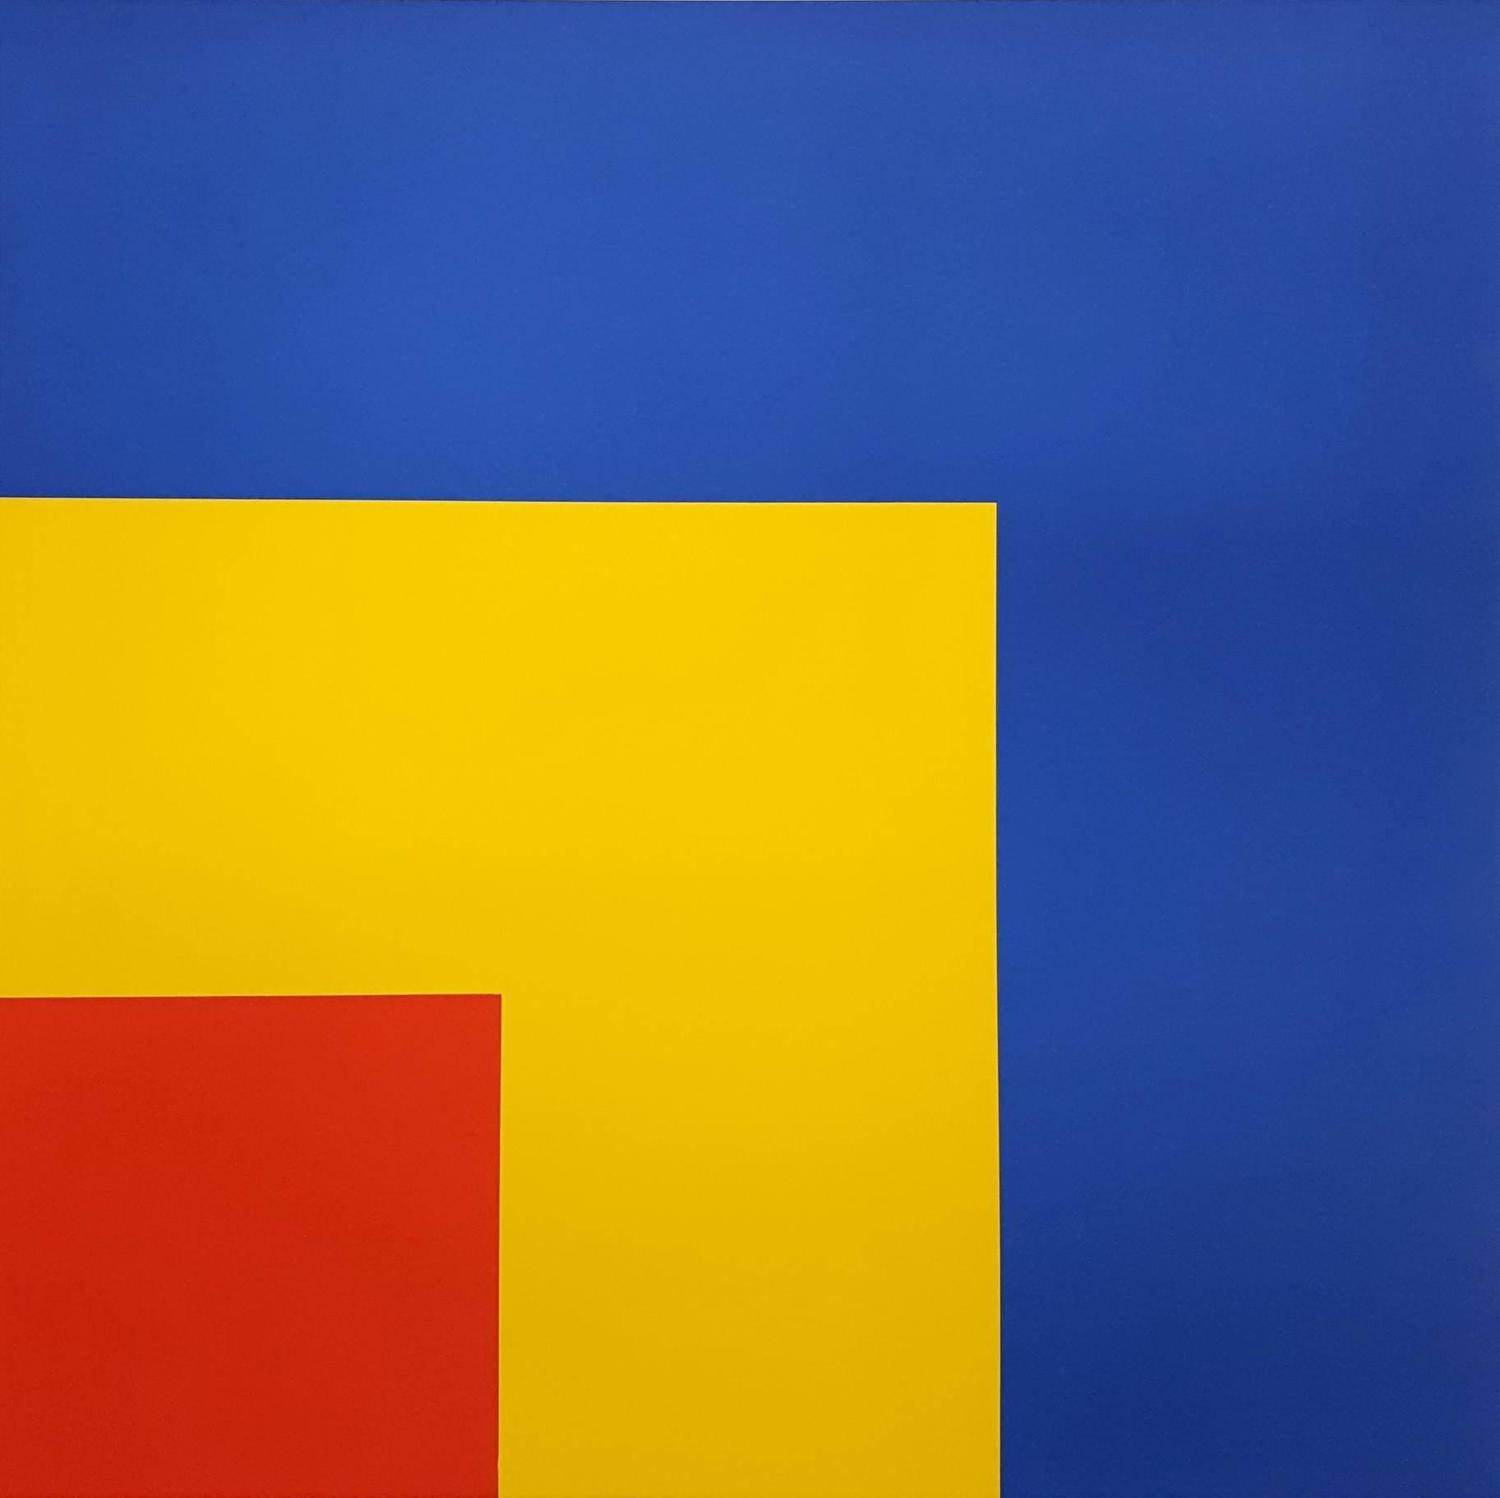 Ellsworth Kelly - Red, Yellow, Blue, Print For Sale at 1stdibs